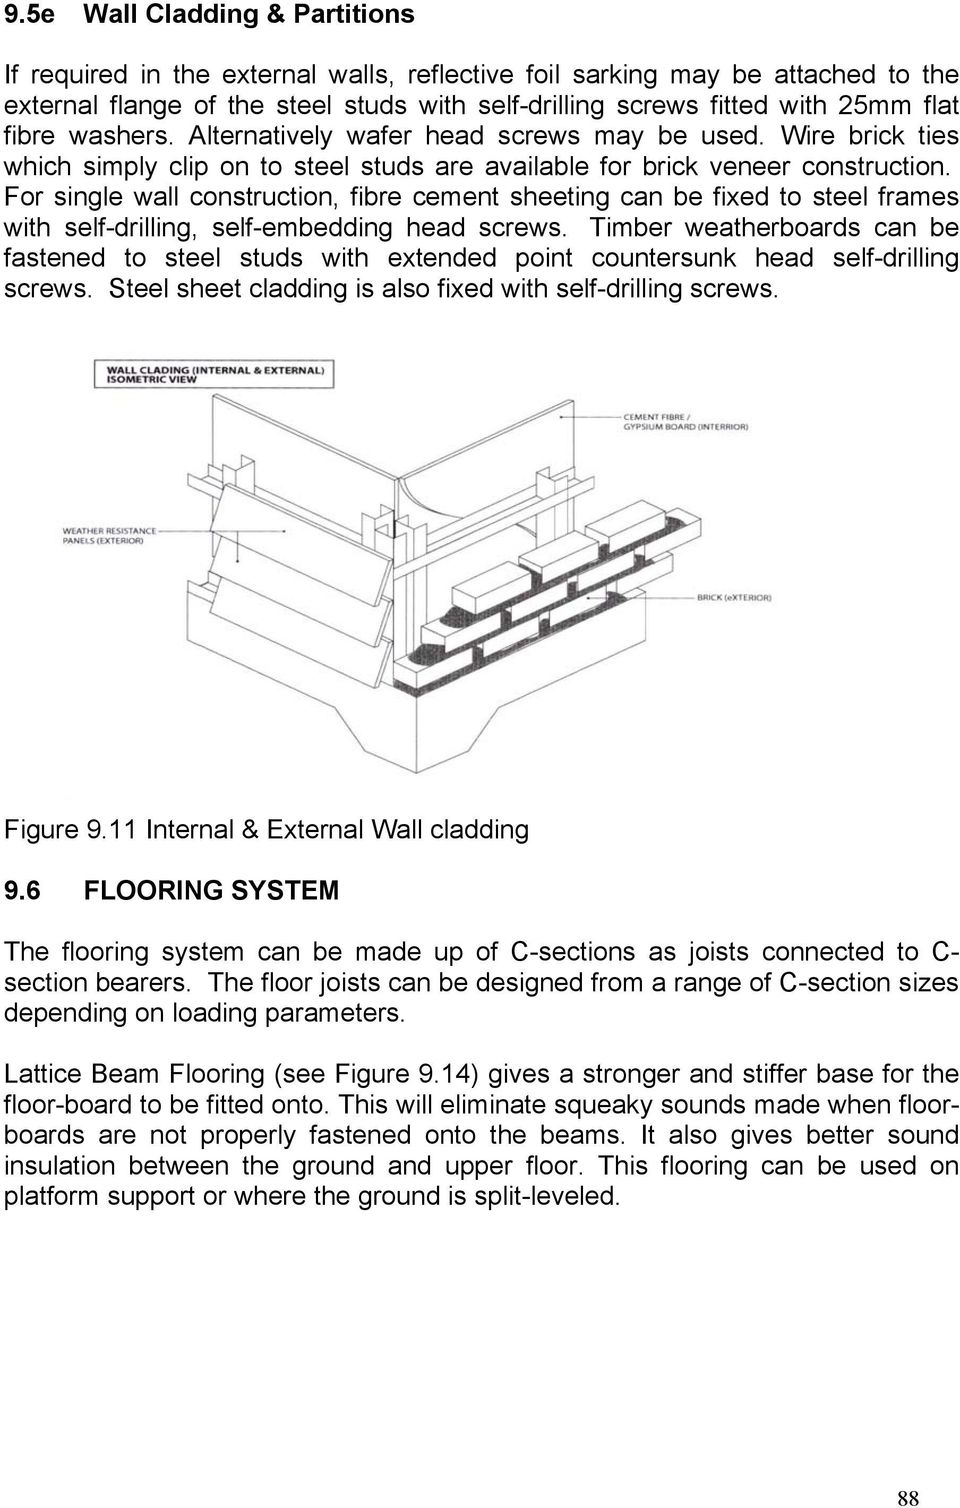 For single wall construction, fibre cement sheeting can be fixed to steel frames with self-drilling, self-embedding head screws.